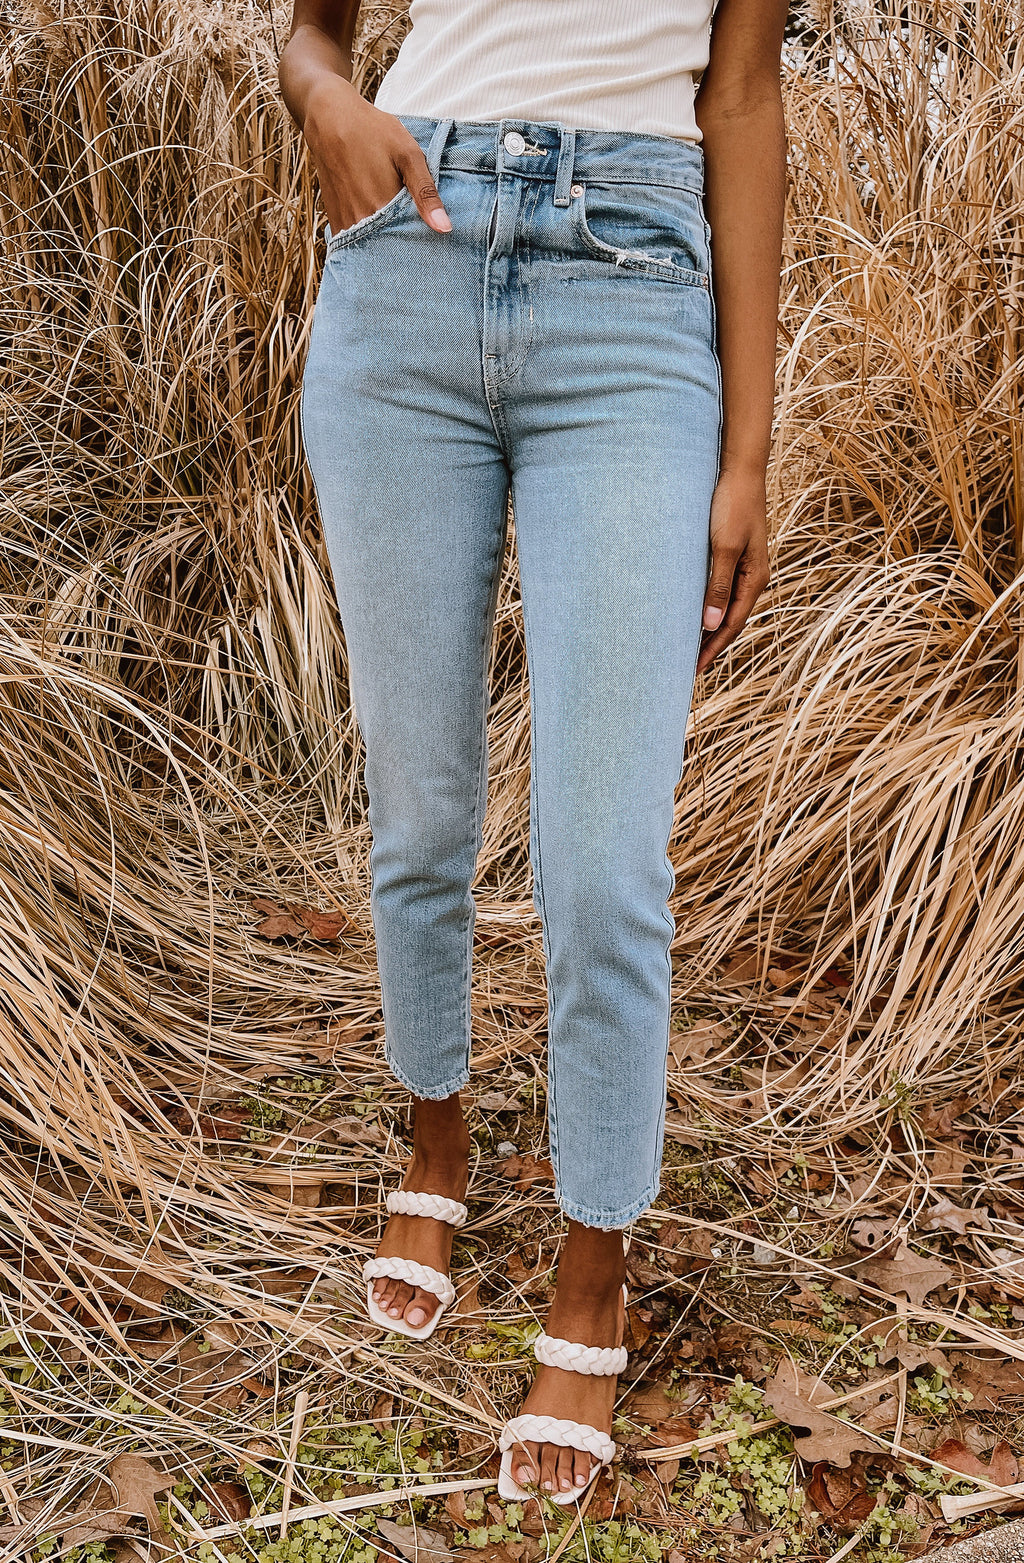 FREE PEOPLE STOVEPIPE JEAN - MID INDIGO